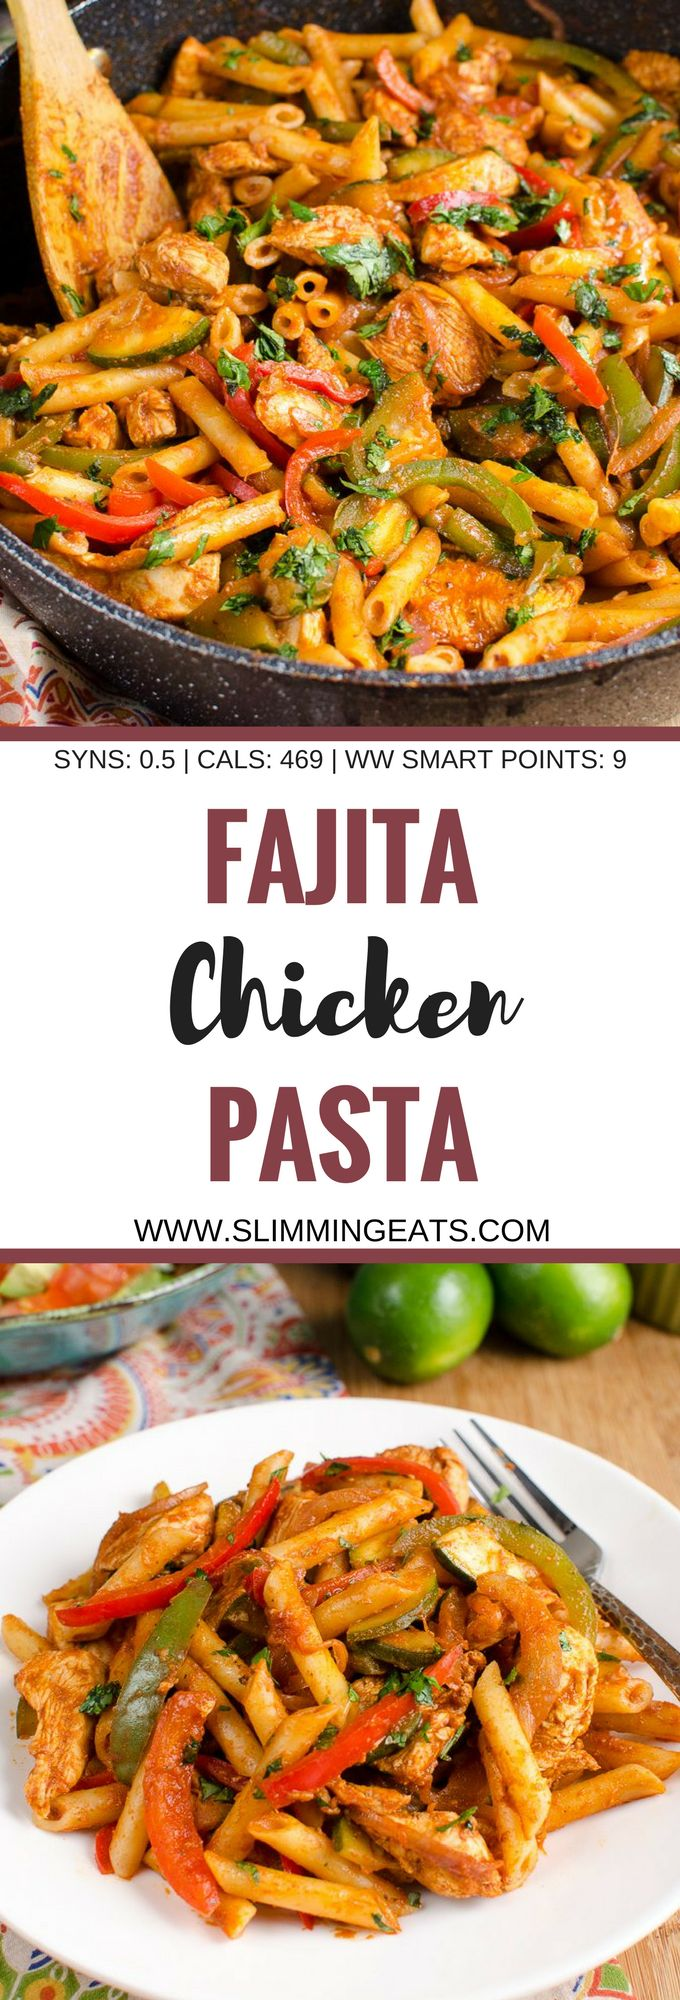 Slimming Eats Low Syn Chicken Fajita Pasta - gluten free, Slimming World and Weight Watchers friendly